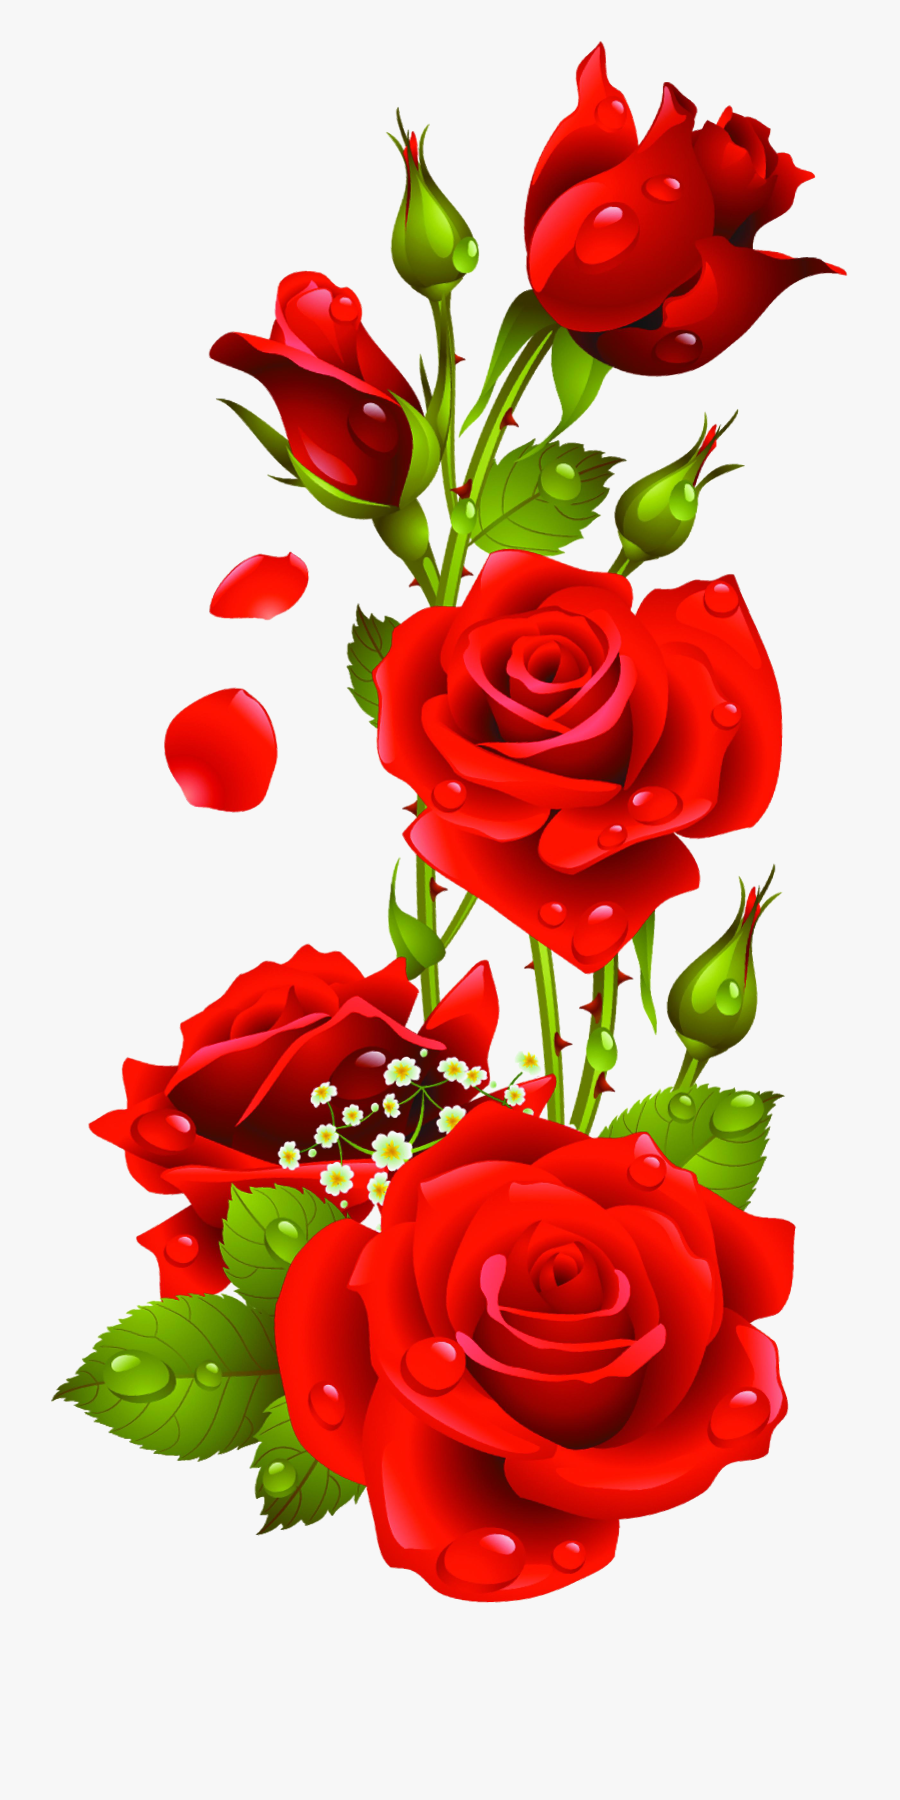 Transparent Beauty And The Beast Rose Clipart - Rose Flower Design Border Png, Transparent Clipart